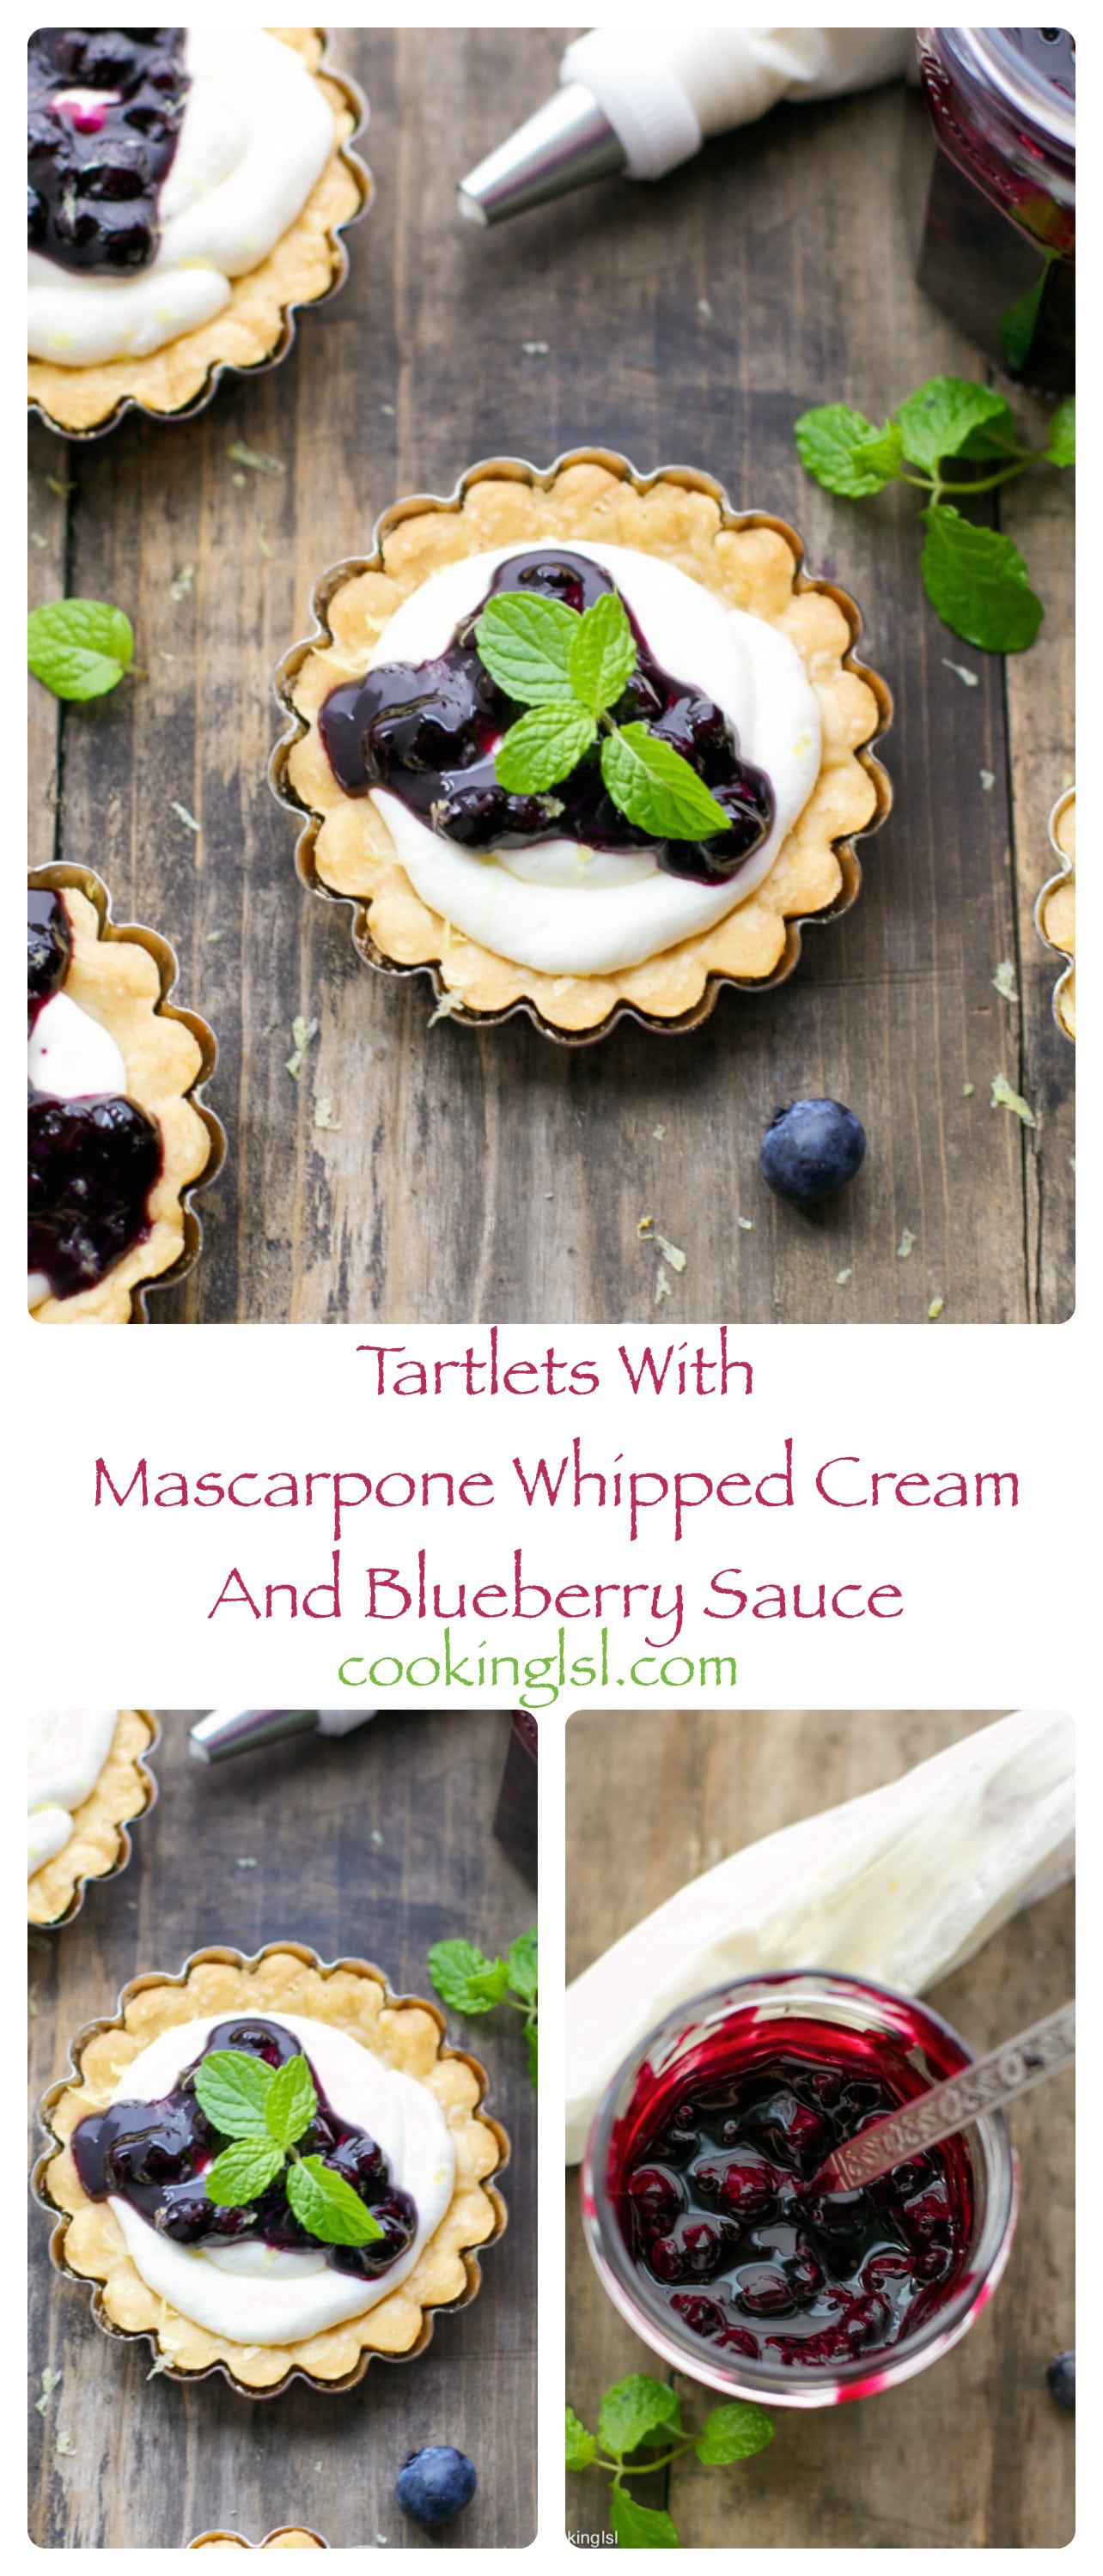 mini tartlets-tarts-whipped-mascarpone-cream-blueberry-sauce-dessert